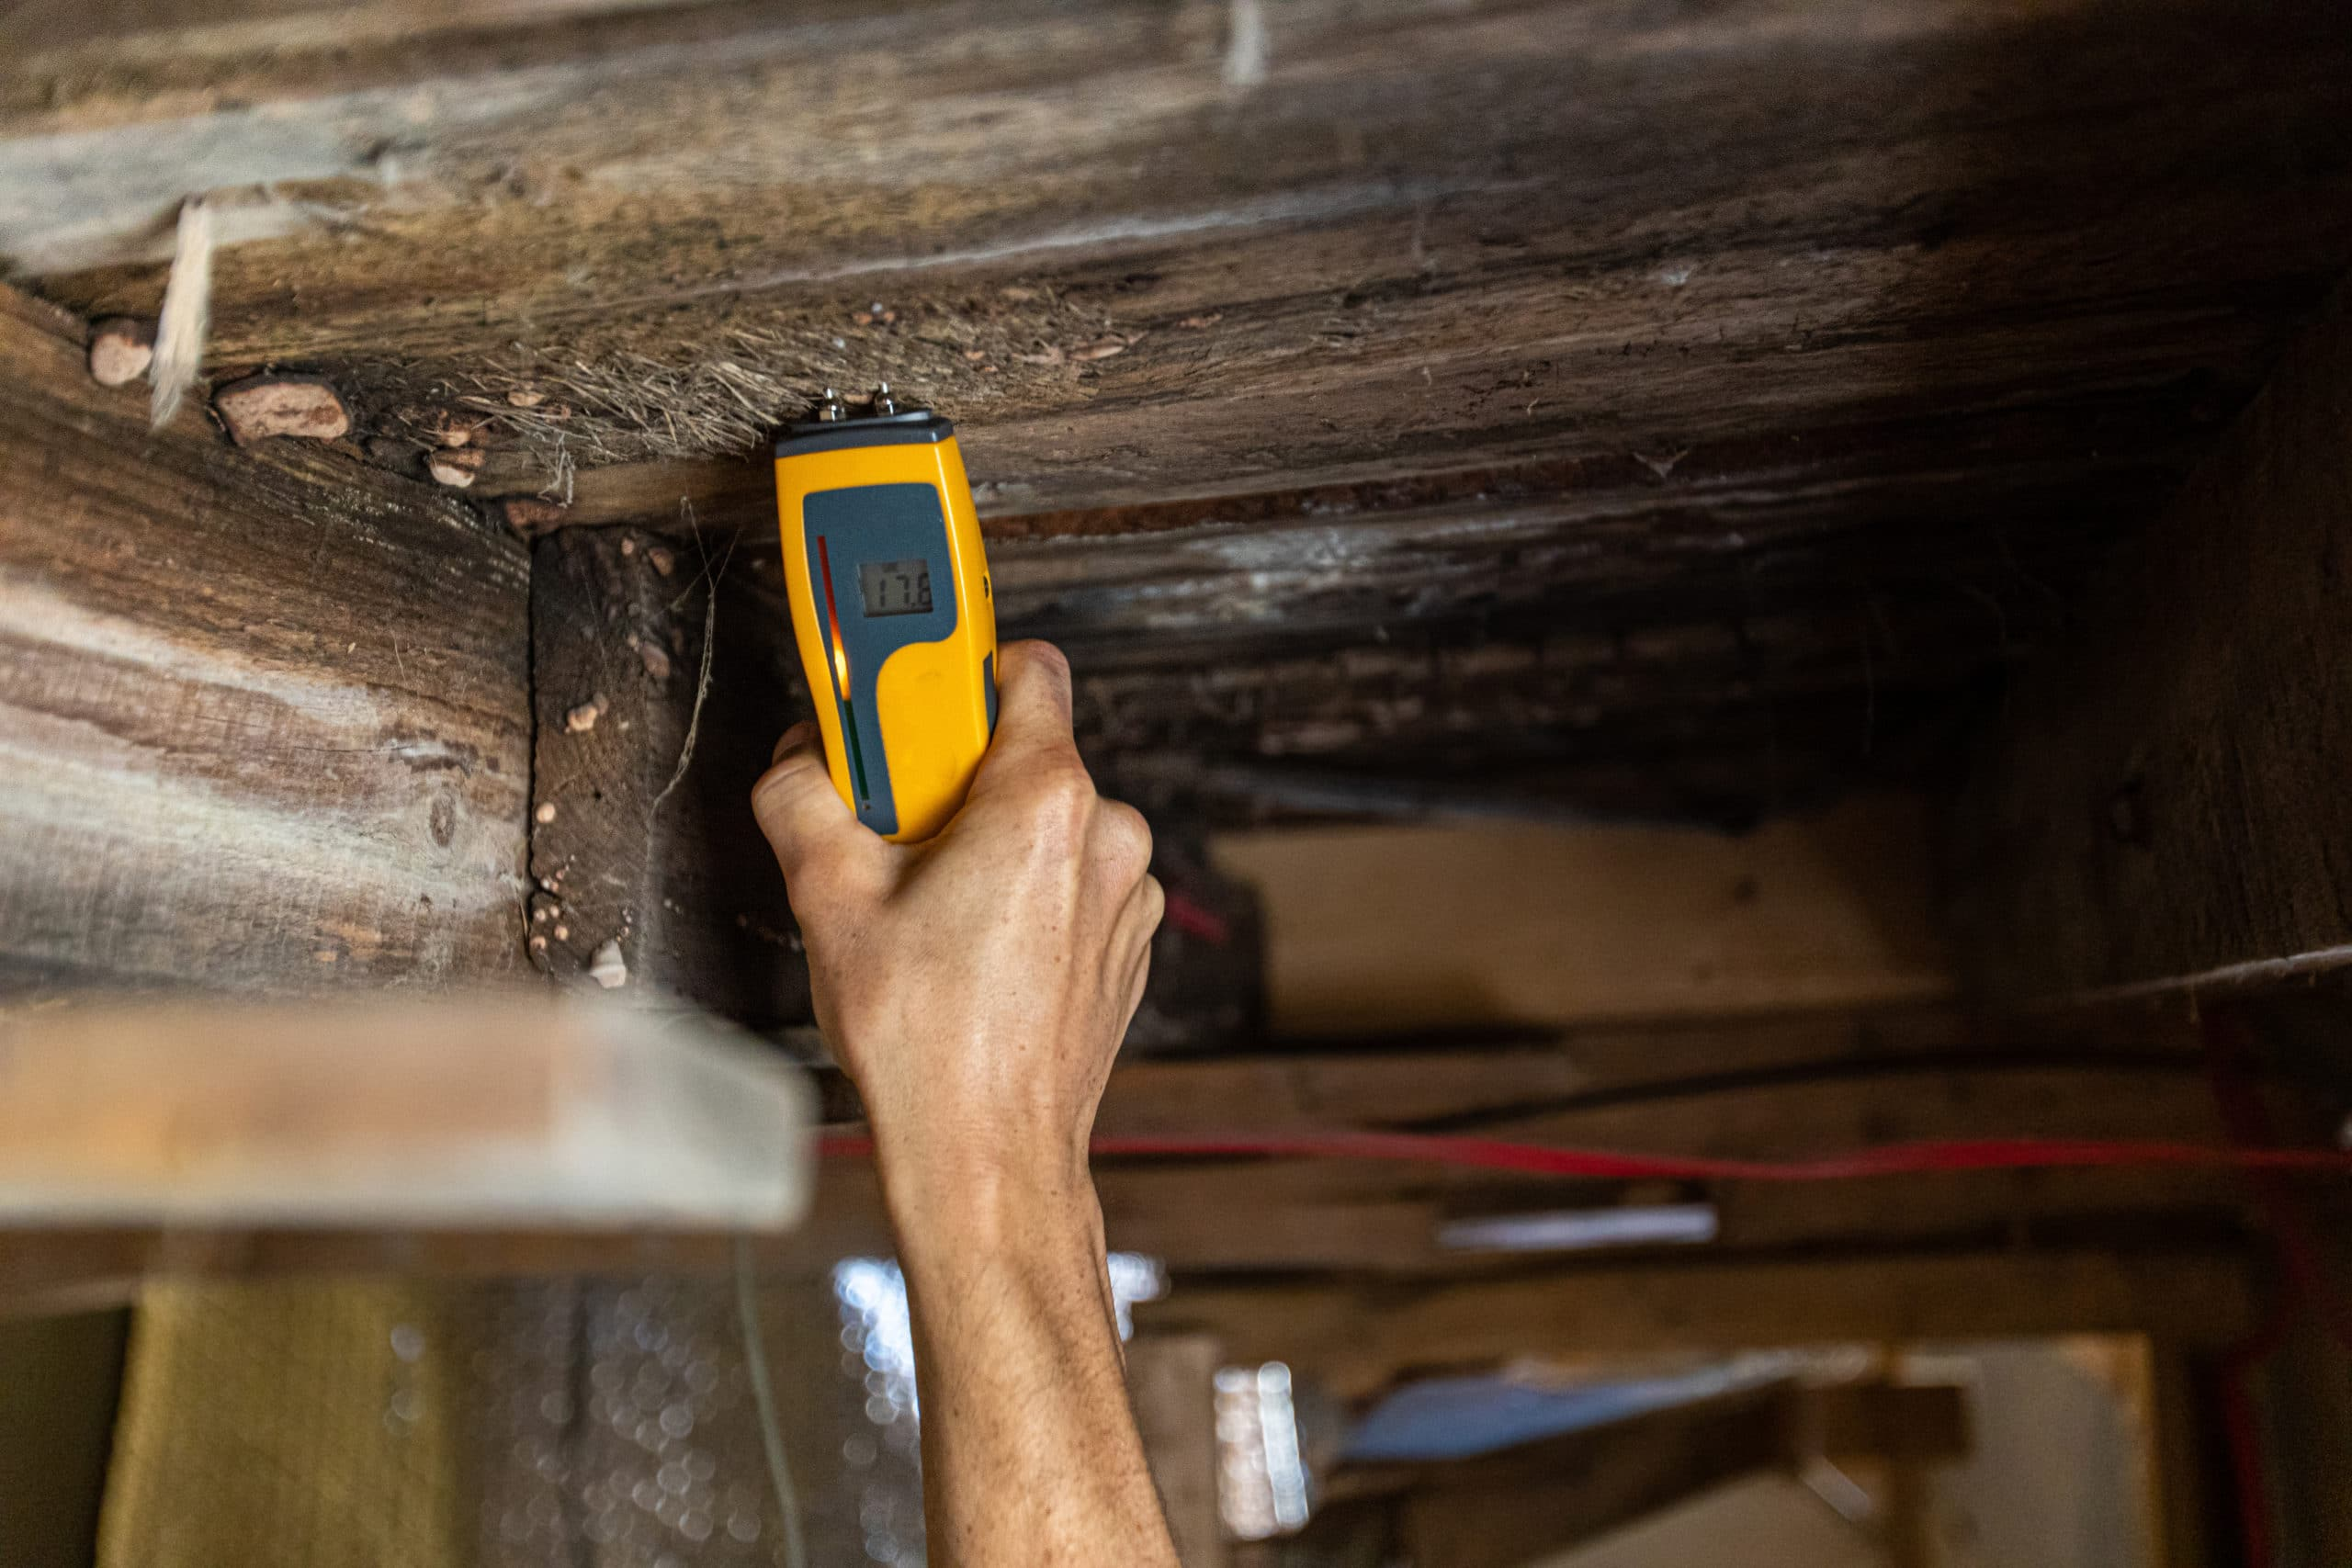 An environmental home inspector is viewed close-up at work, using an electronic moisture meter to detect signs of damp and rot in wooden structural elements.